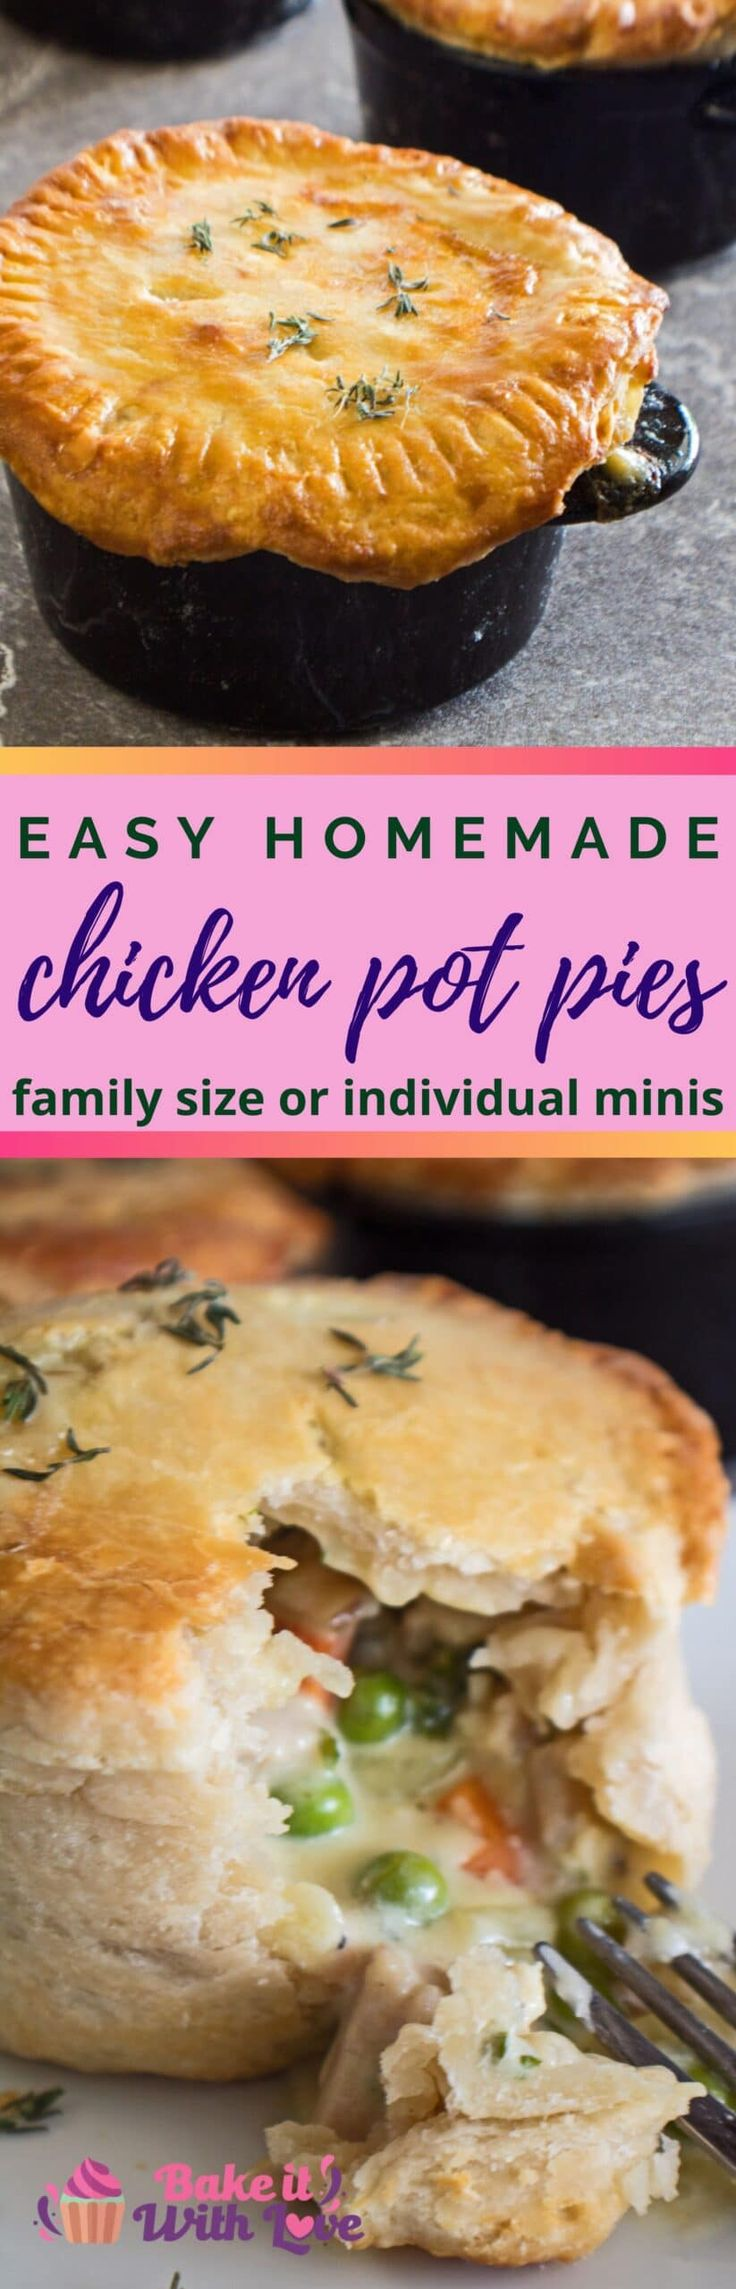 Jun 23, 2020 – The best easy, homemade Chicken Pot Pie recipe makes these perfect single serving individual double crust…